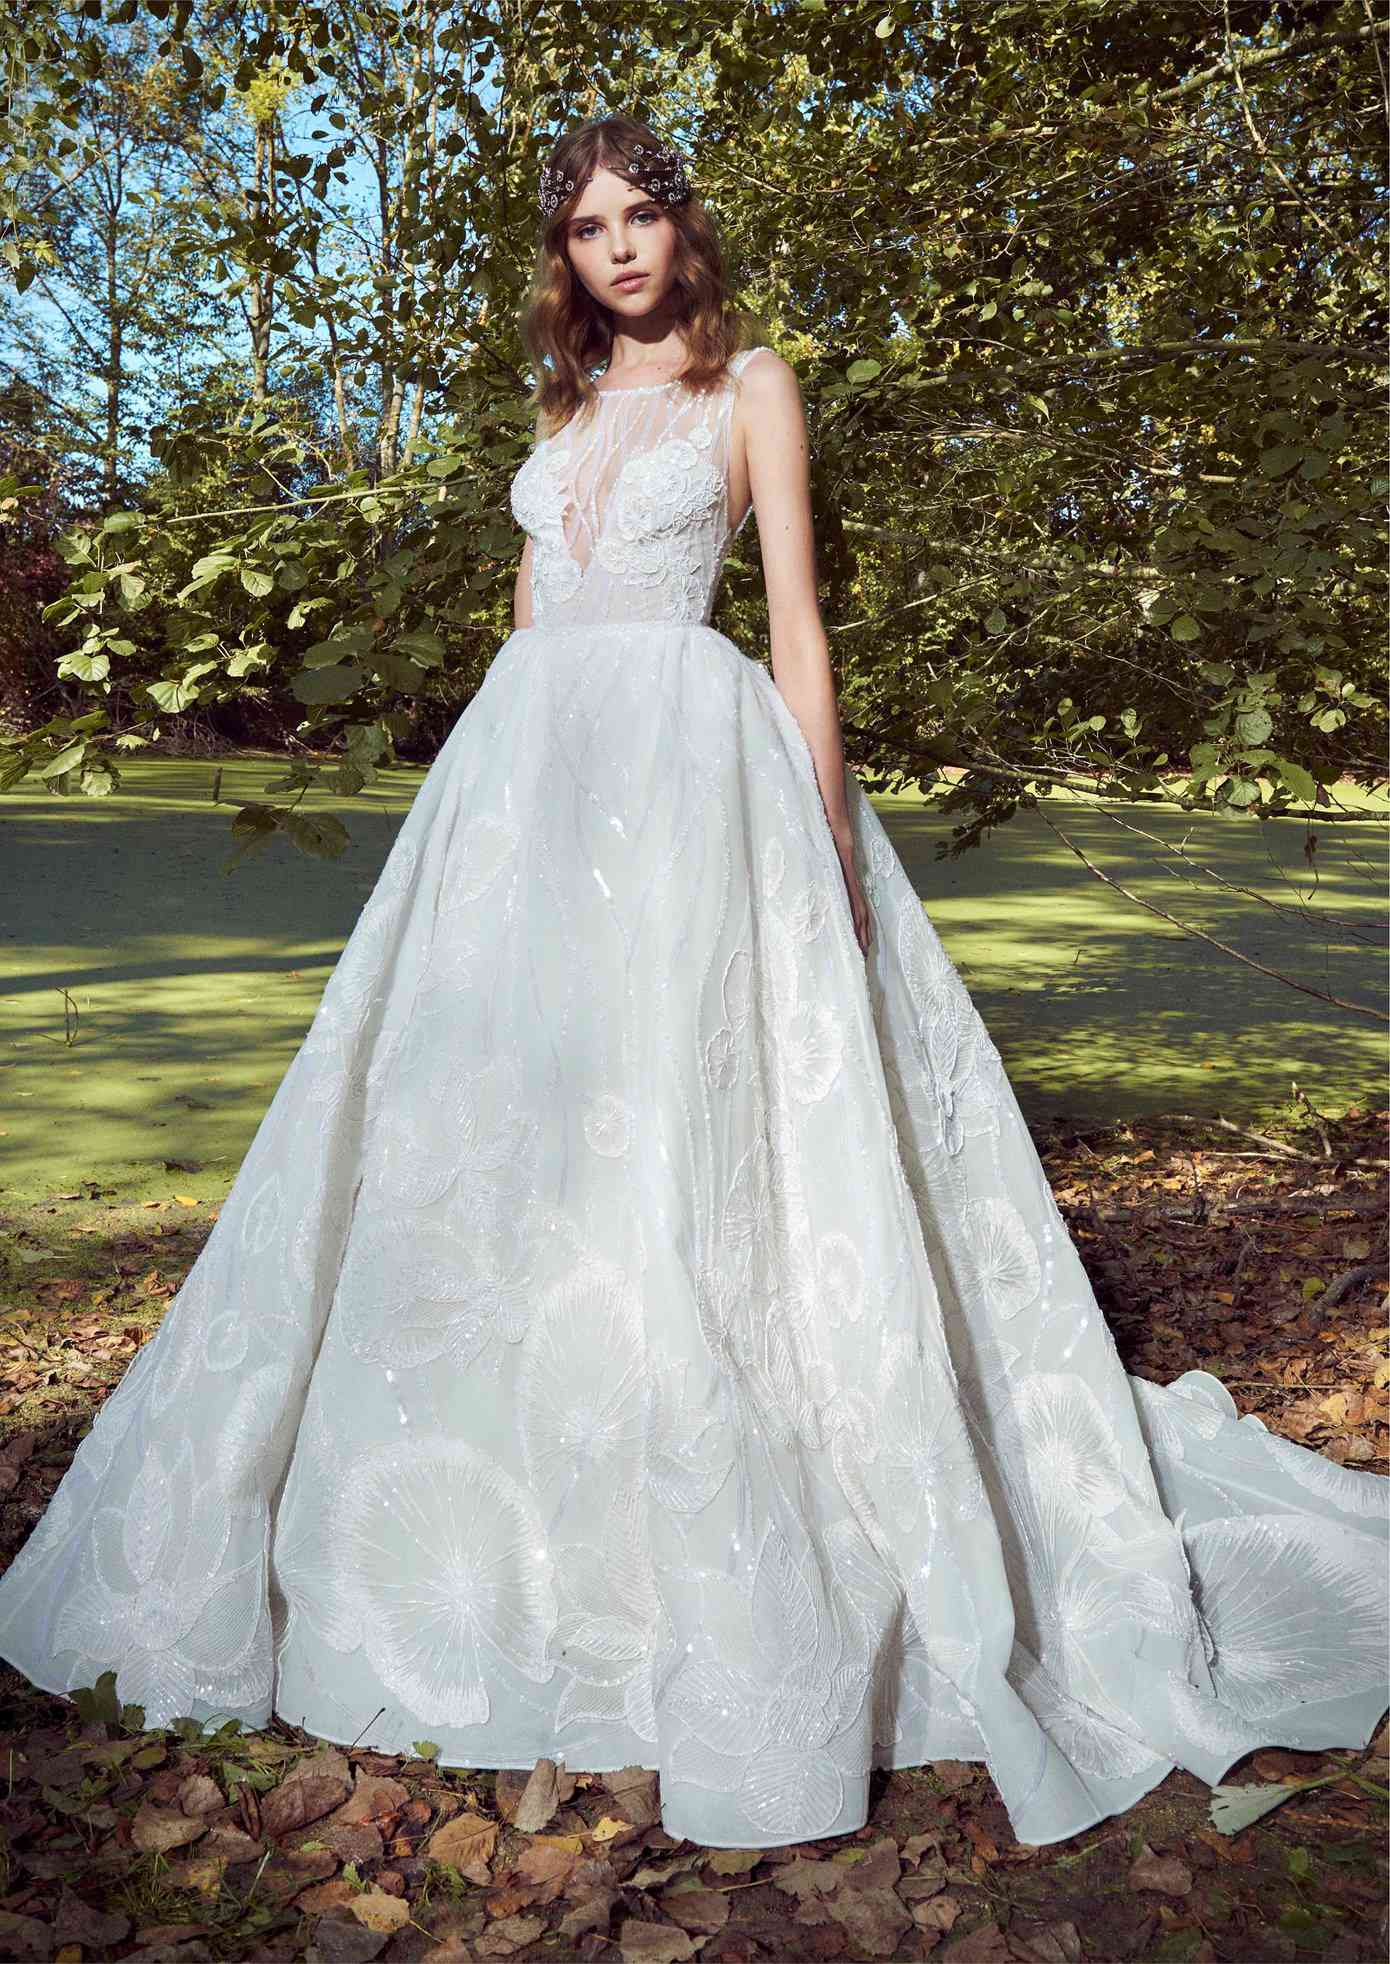 Model in a sleeveless ballgown with a beaded illusion neckline and allover sequined and beaded floral embroidery with appliques